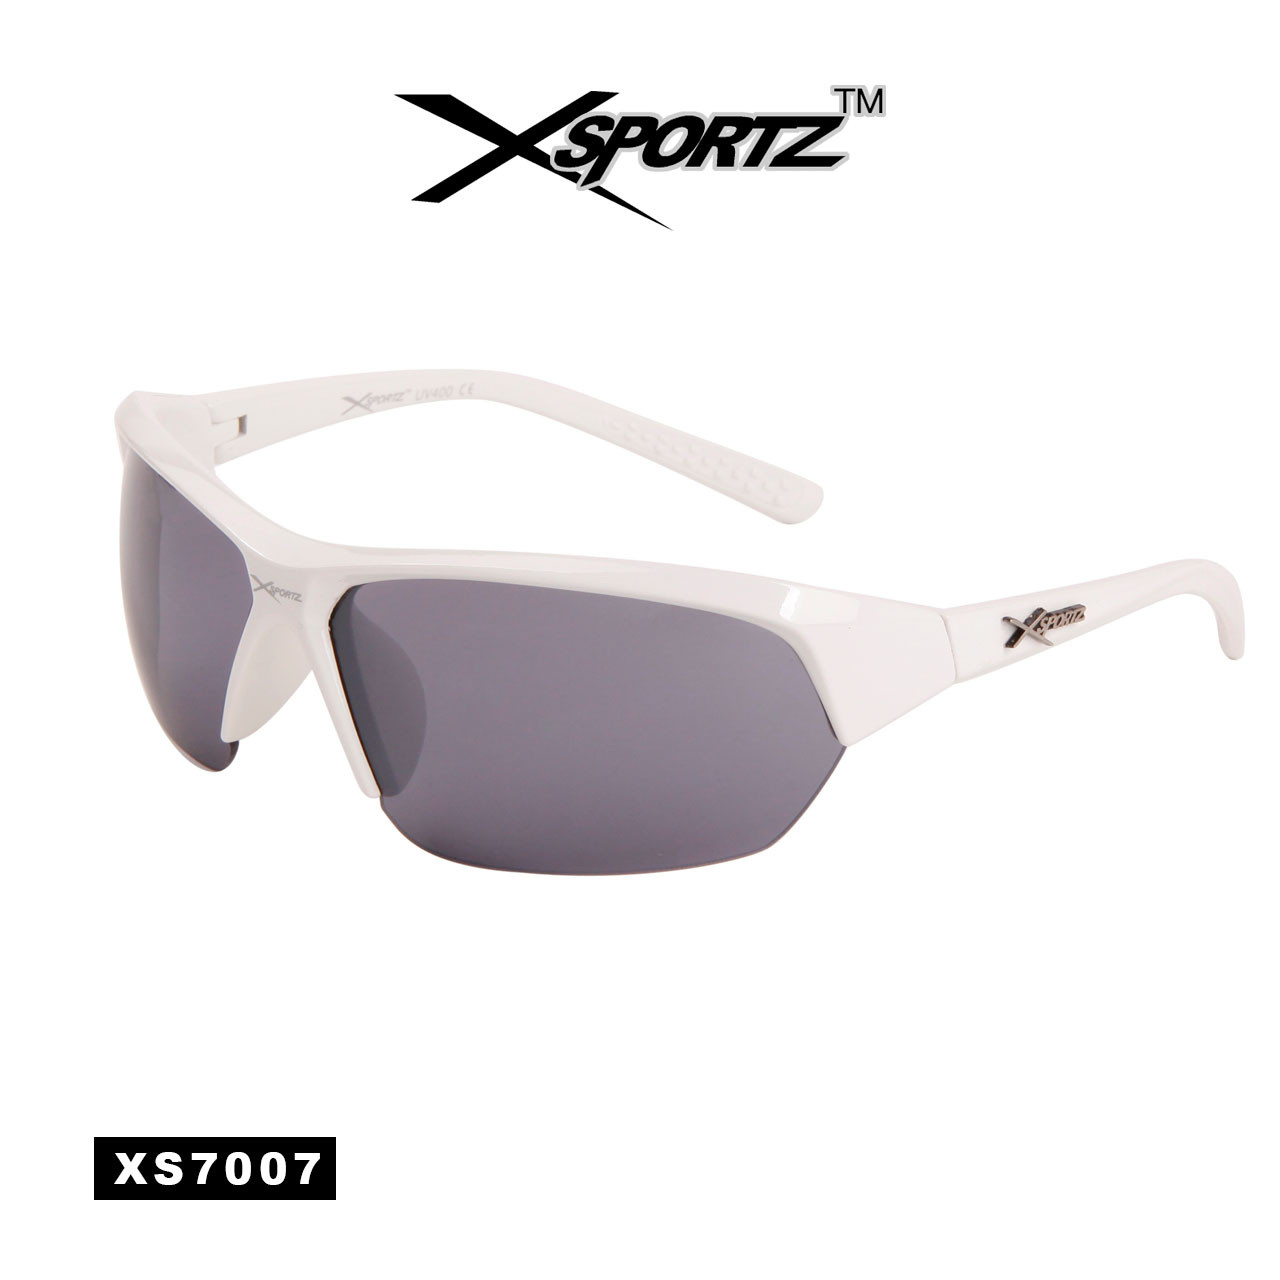 White Sport Wholesale Men's Sunglasses - Style #XS7007W